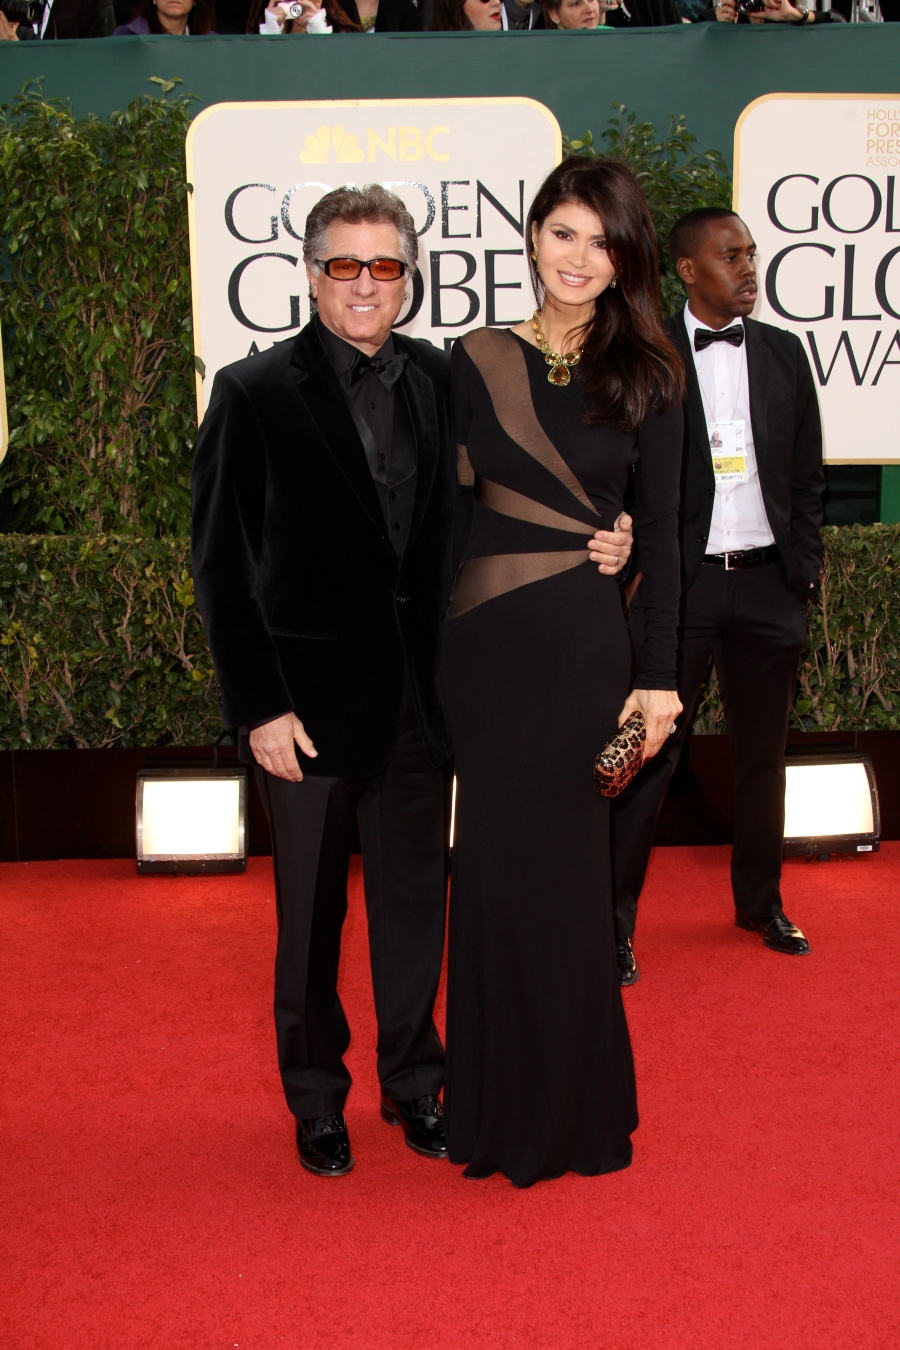 The Etkin's arrive at The Golden Globes,...in Style!